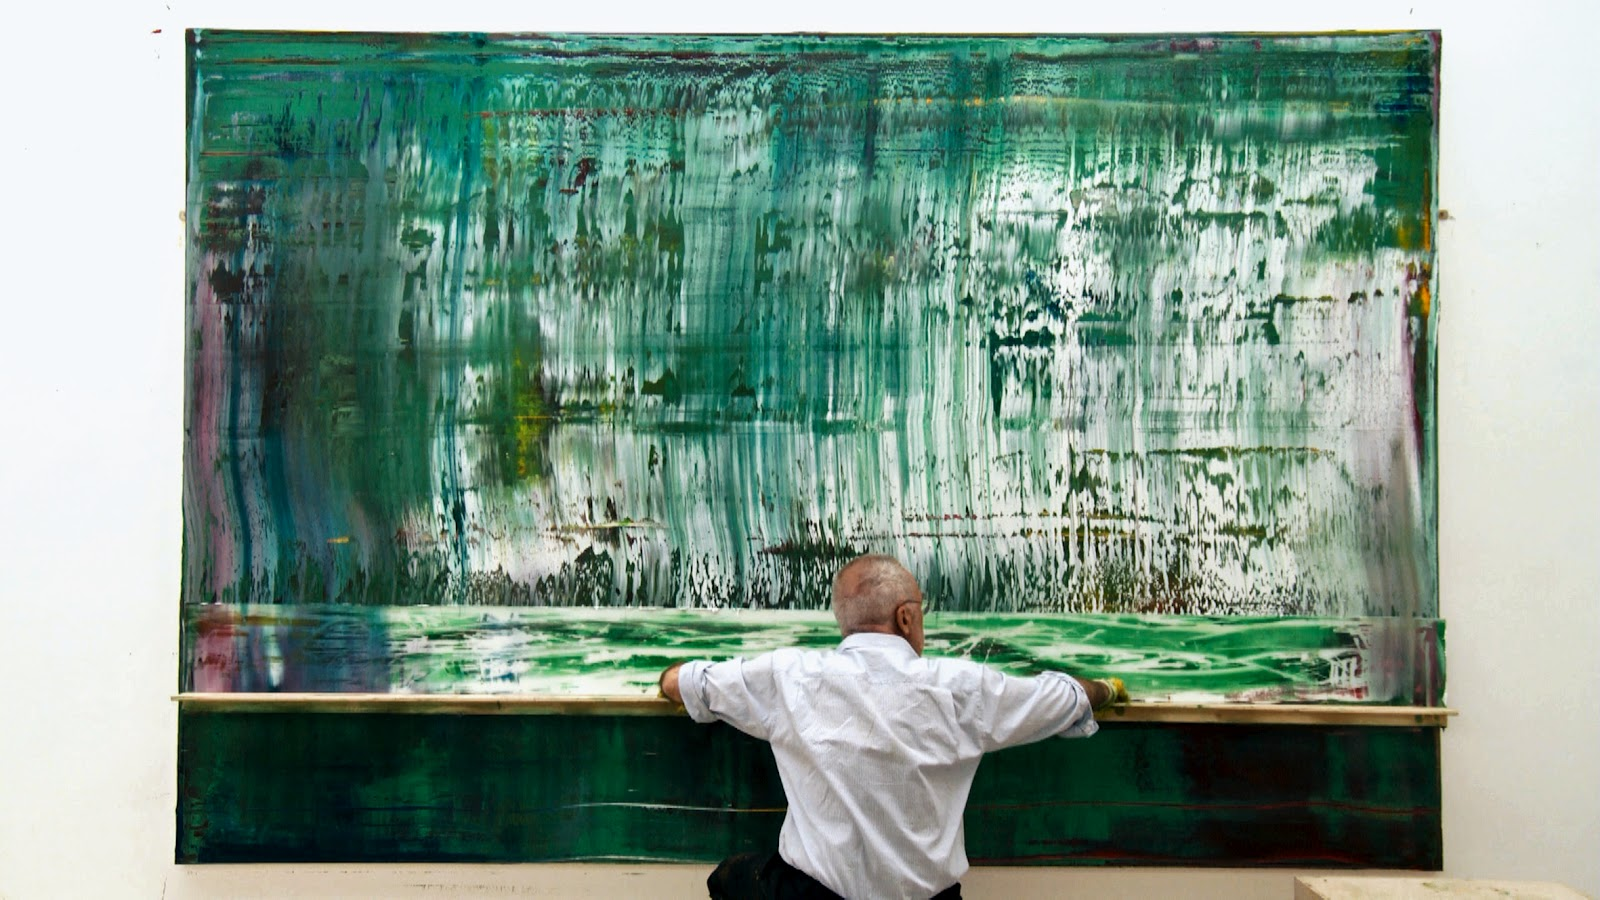 Gerhard-Richter-Painting-documentary-3.jpg